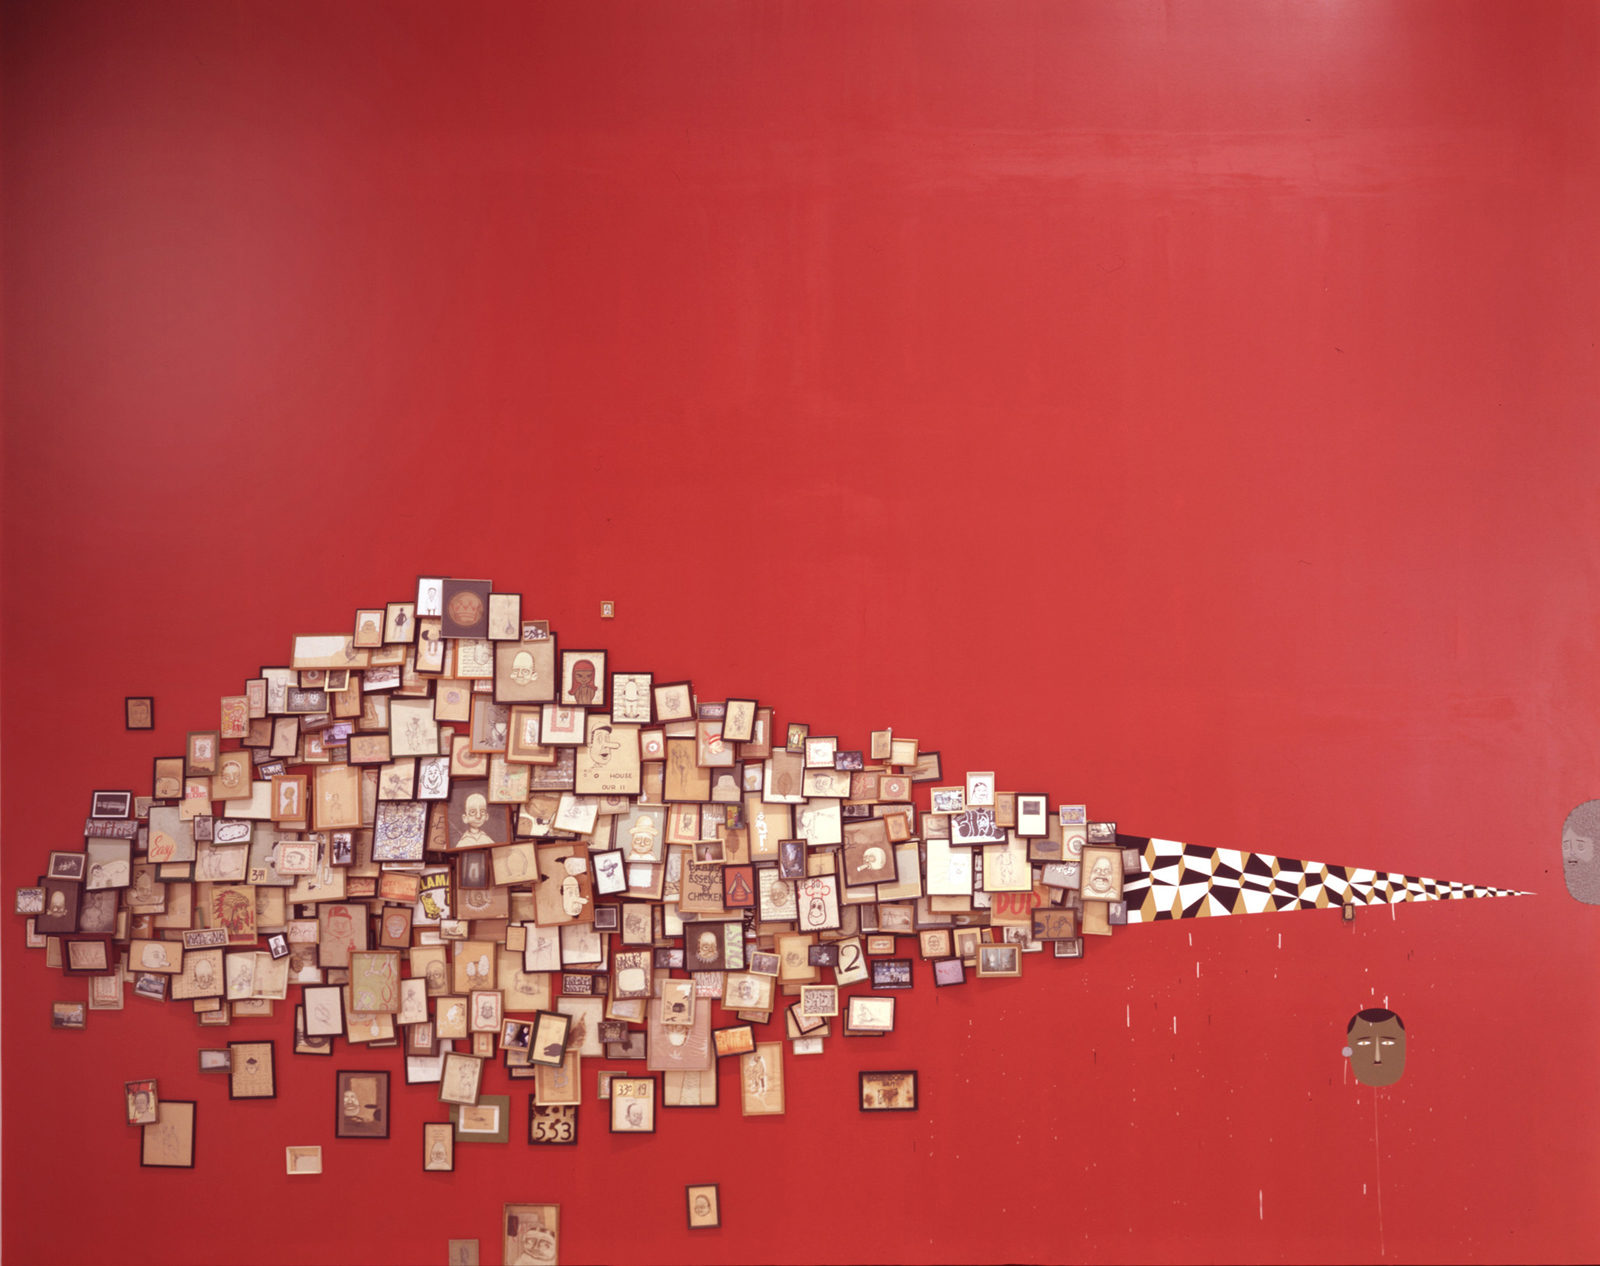 Mixed media installation by Barry McGee